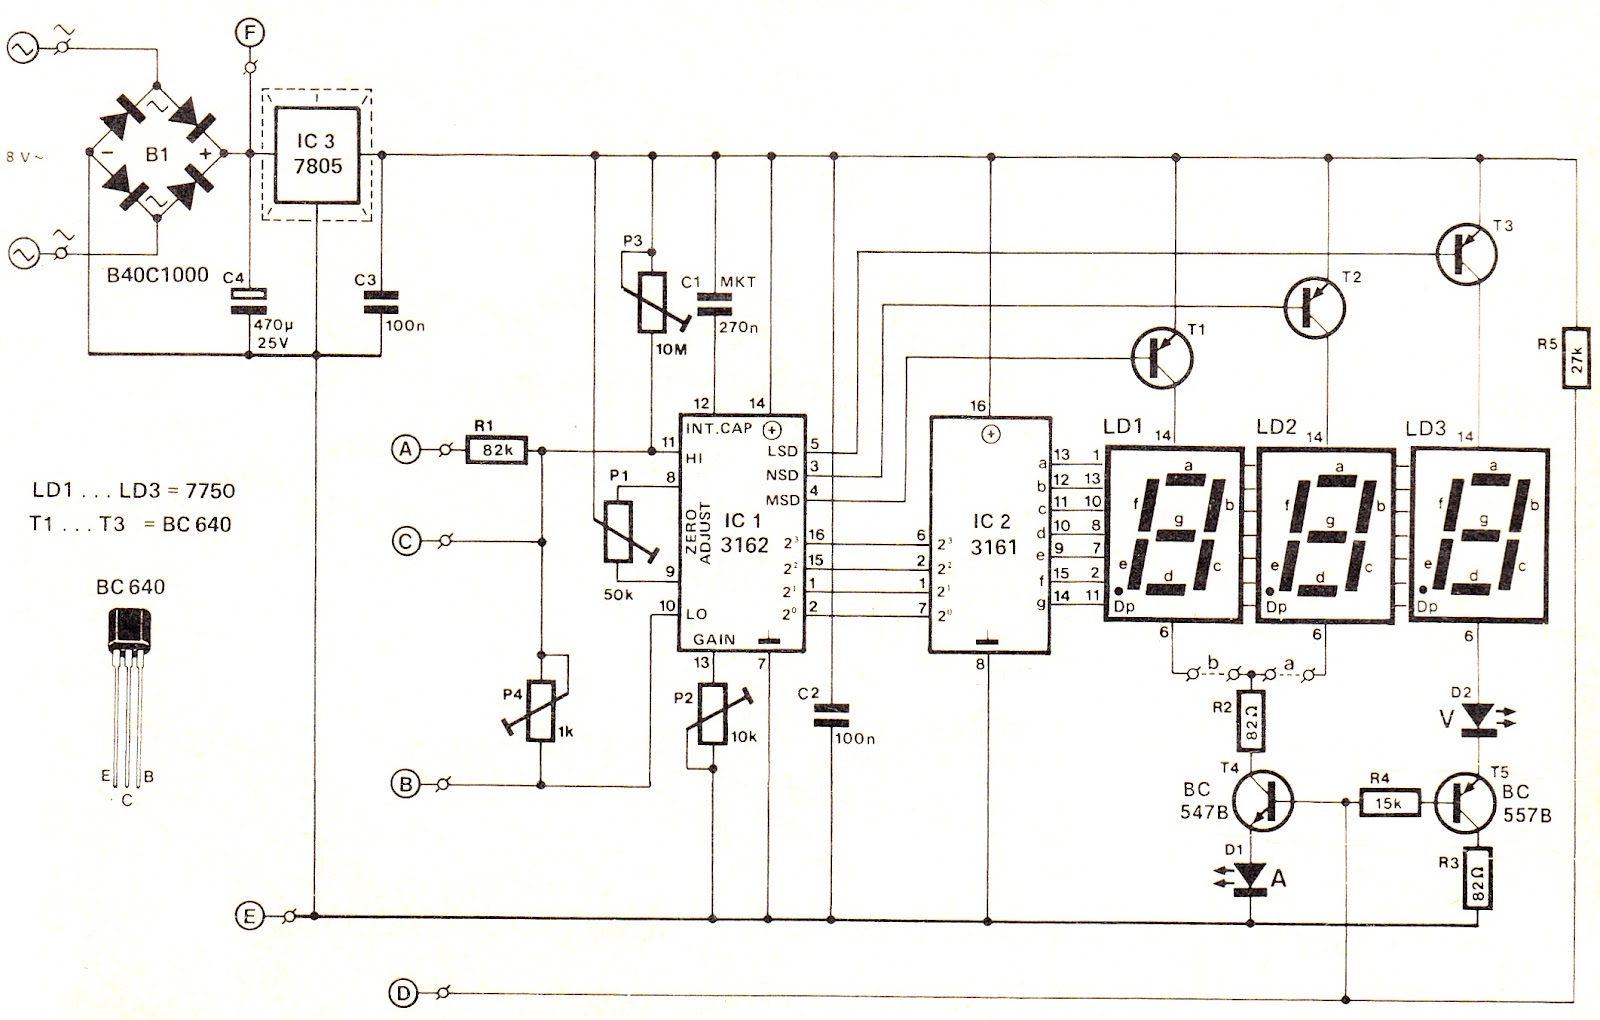 Digital Voltmeter and Ammeter Circuit Module - schematic